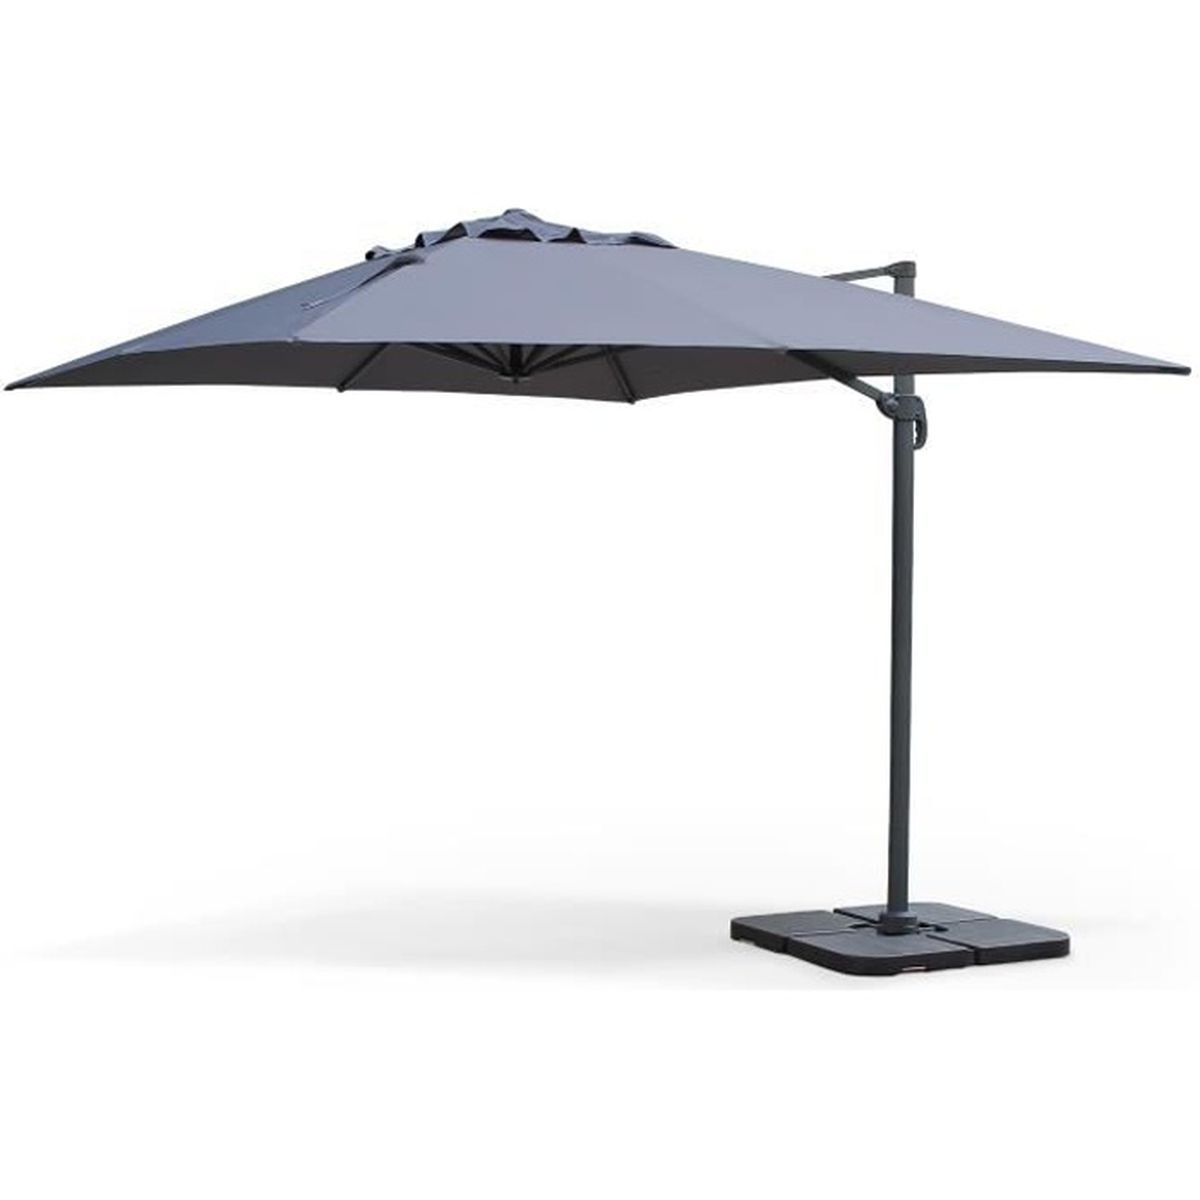 st jean de luz parasol d port 3x4m gris achat vente. Black Bedroom Furniture Sets. Home Design Ideas